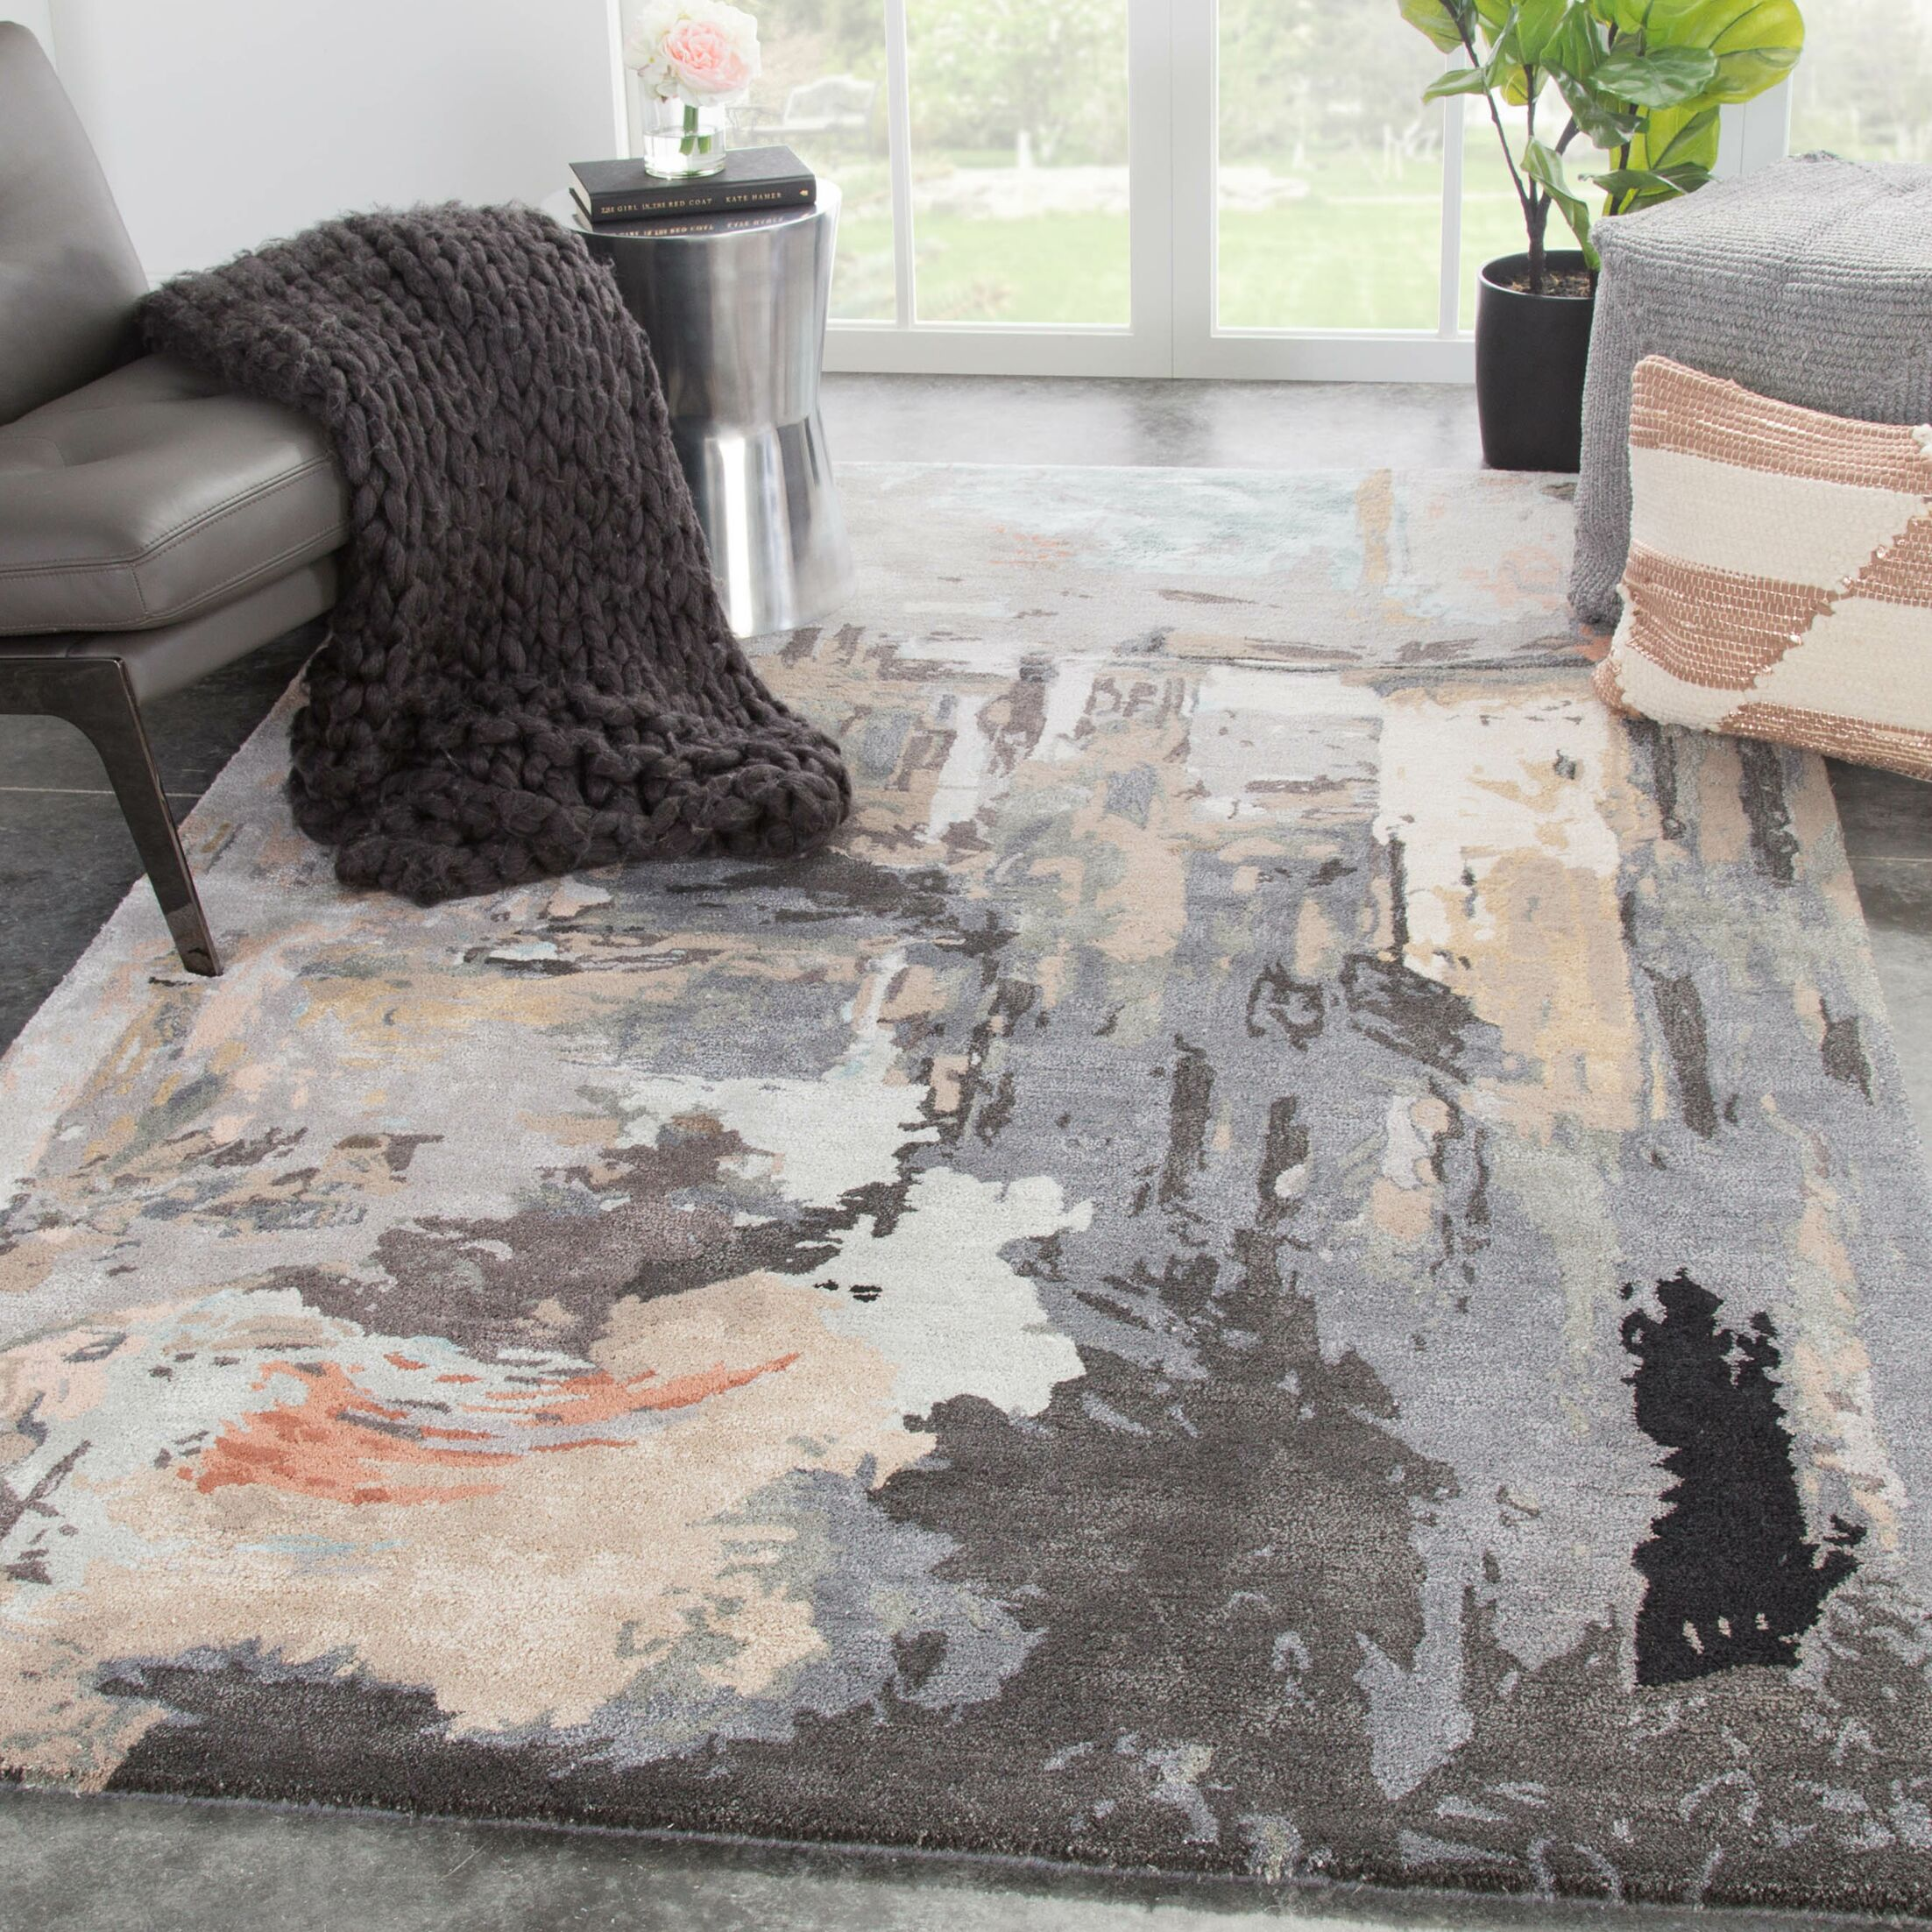 Fairgrove Abstract Hand-Tufted Gray/Beige Area Rug Rug Size: Rectangle 9' x 13'